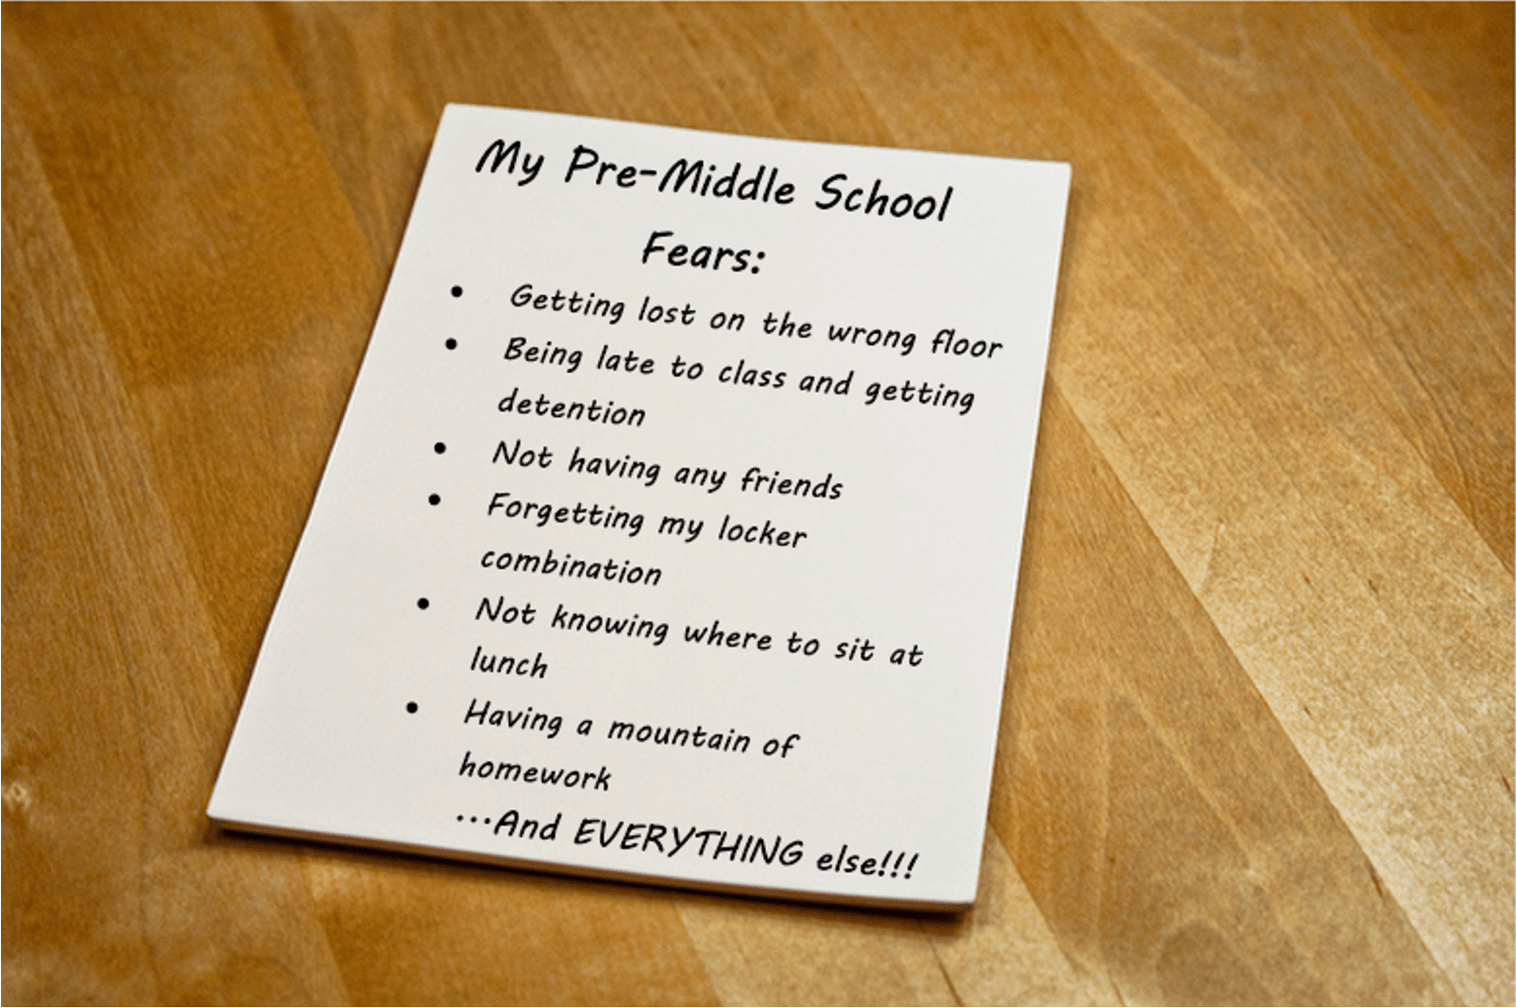 Dealing with fears helps prepare your child for middle school.